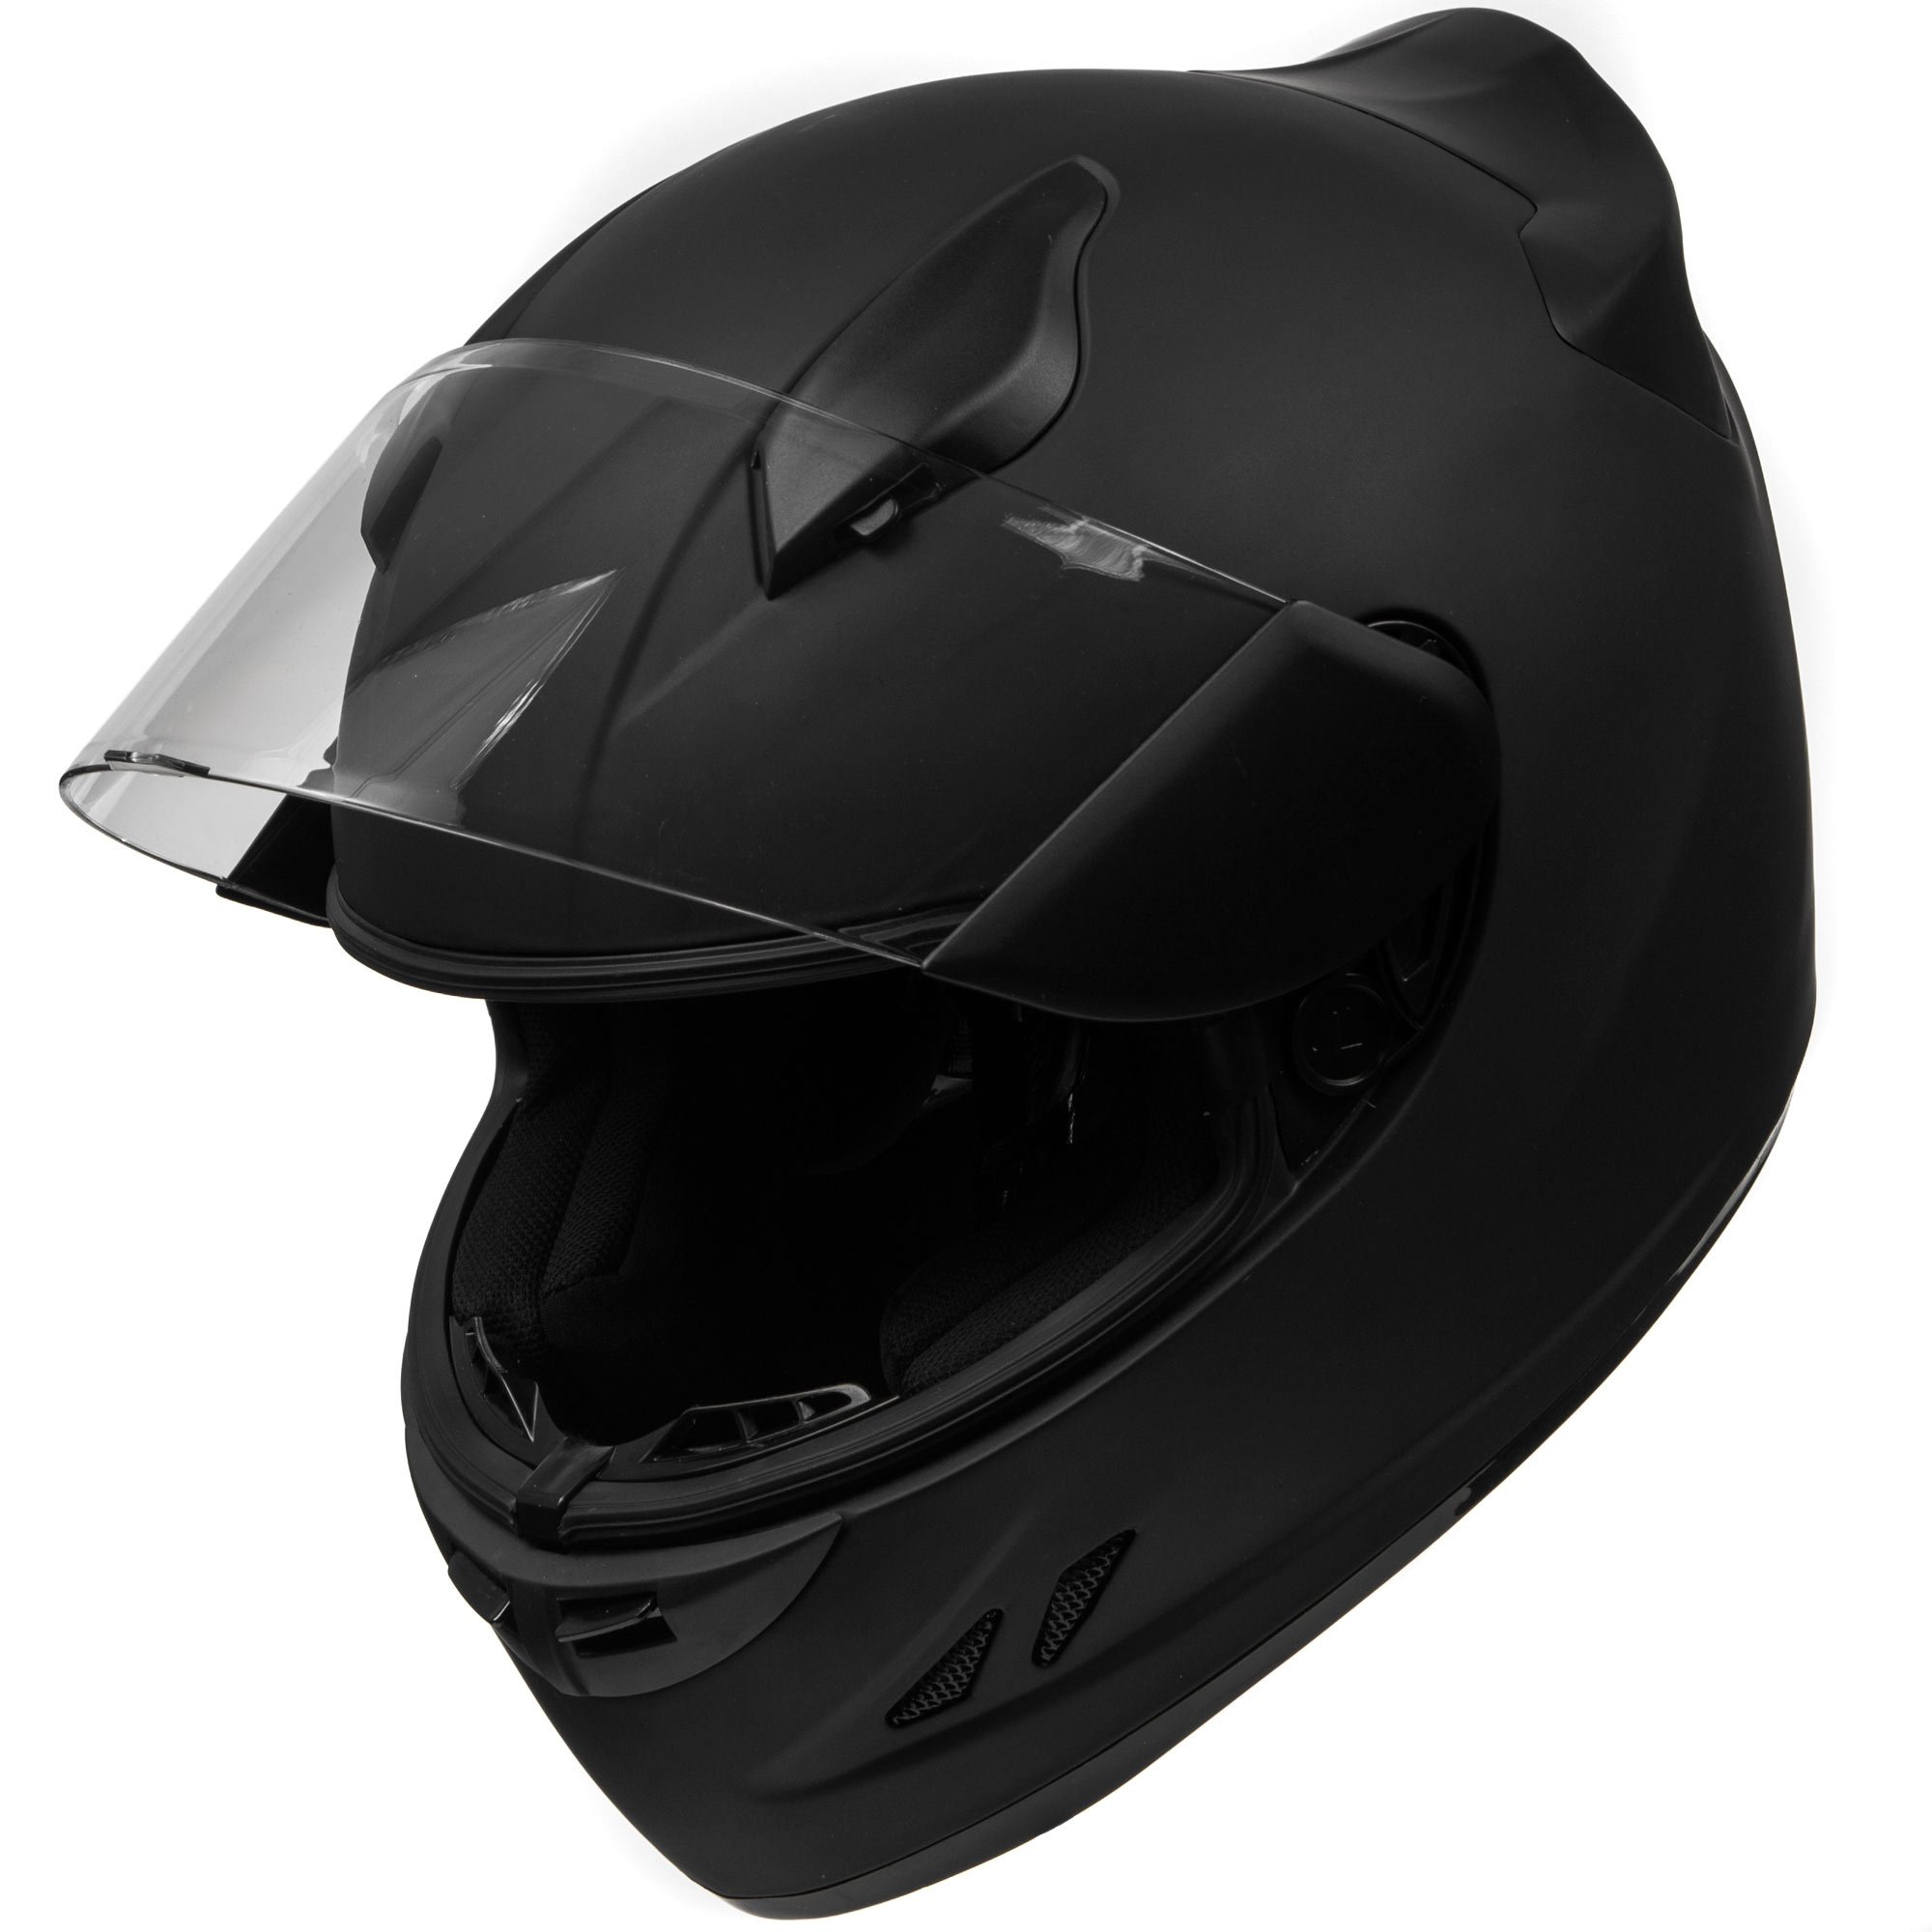 KOI DOT Motorcycle Helmet Full Face Sportbike KOI Matte Black Clear Visor - X-Large